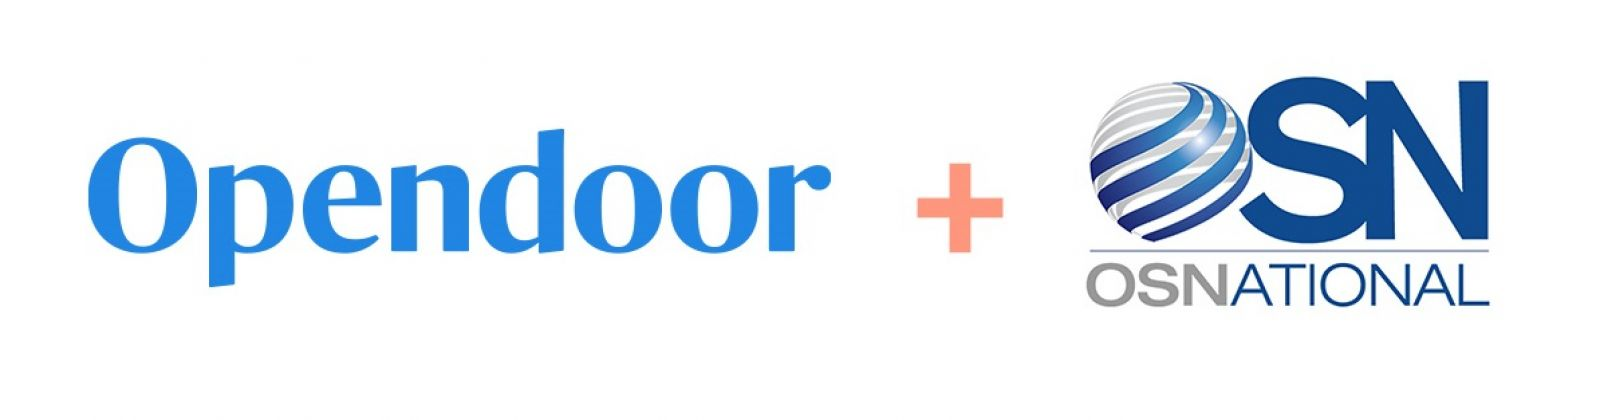 Opendoor Acquires Title and Escrow Company OS National